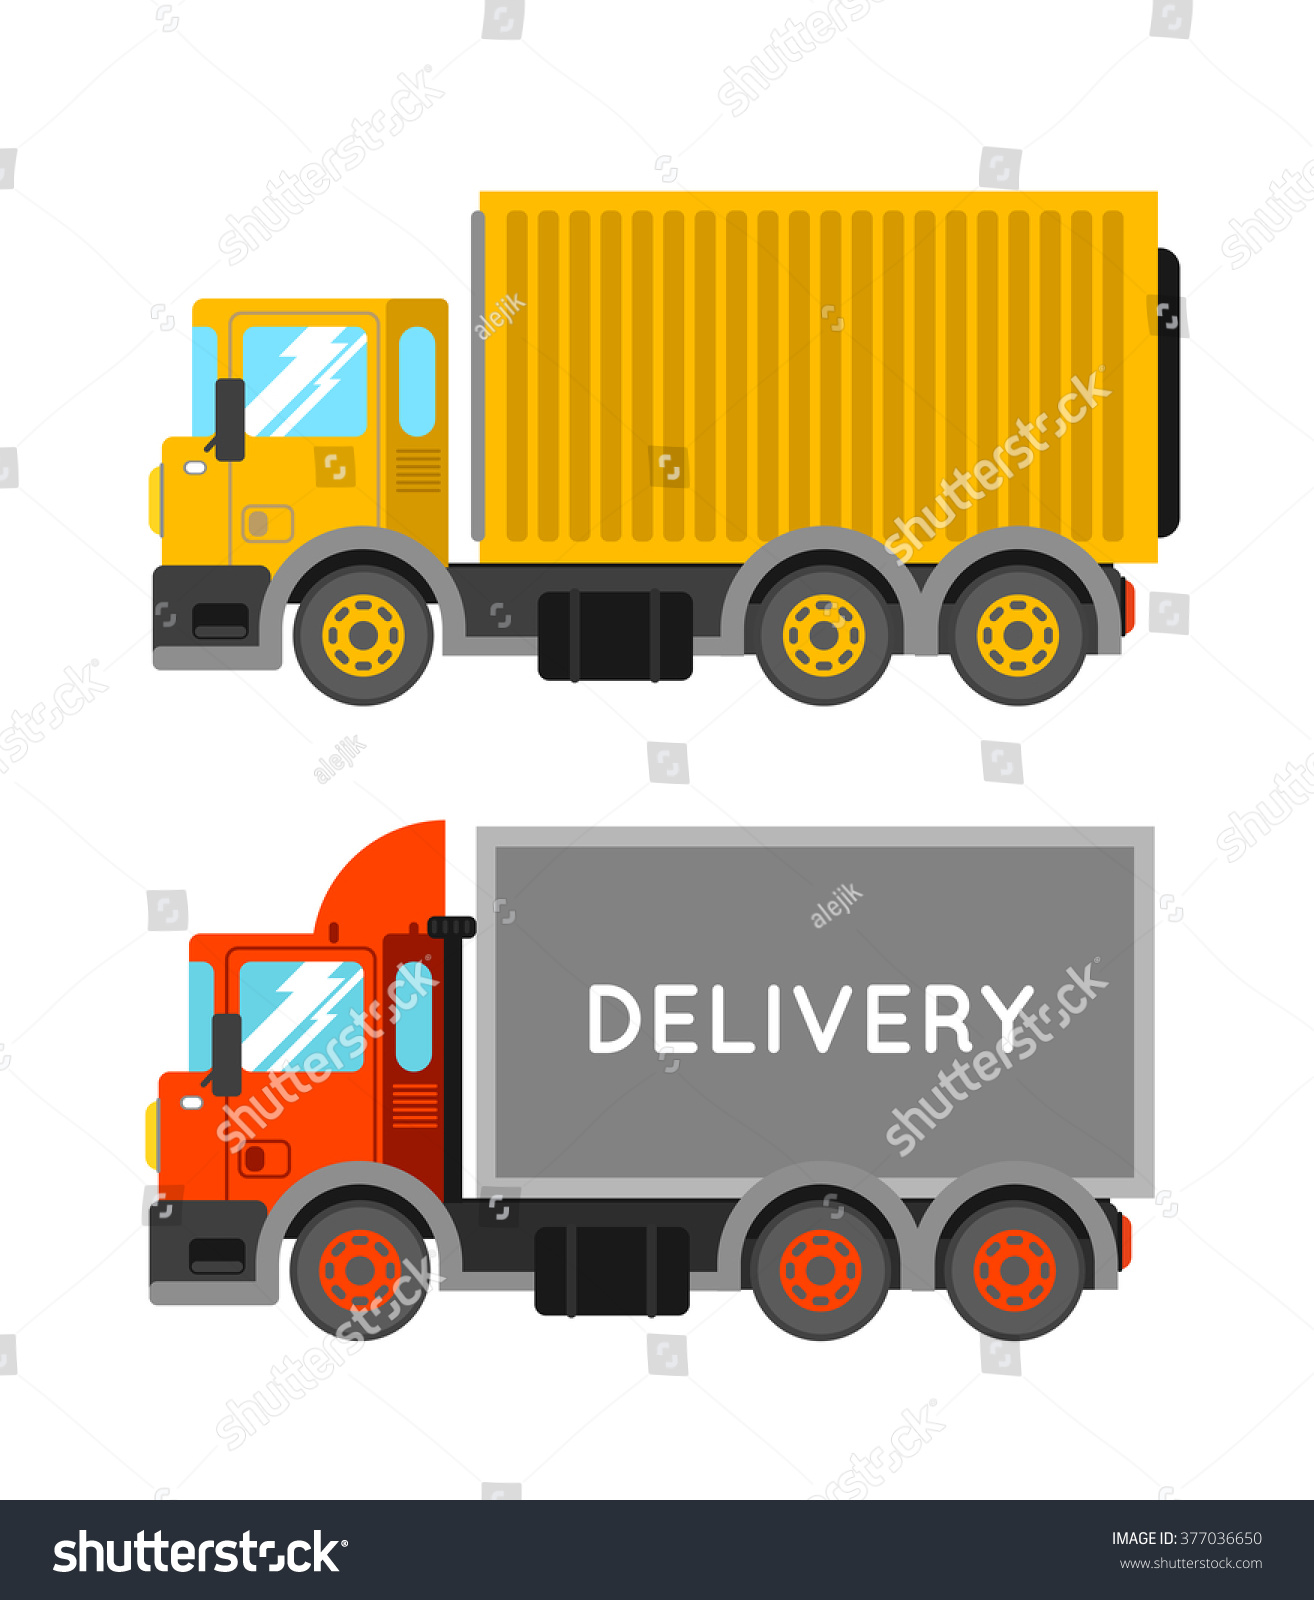 delivery truck vector - photo #21